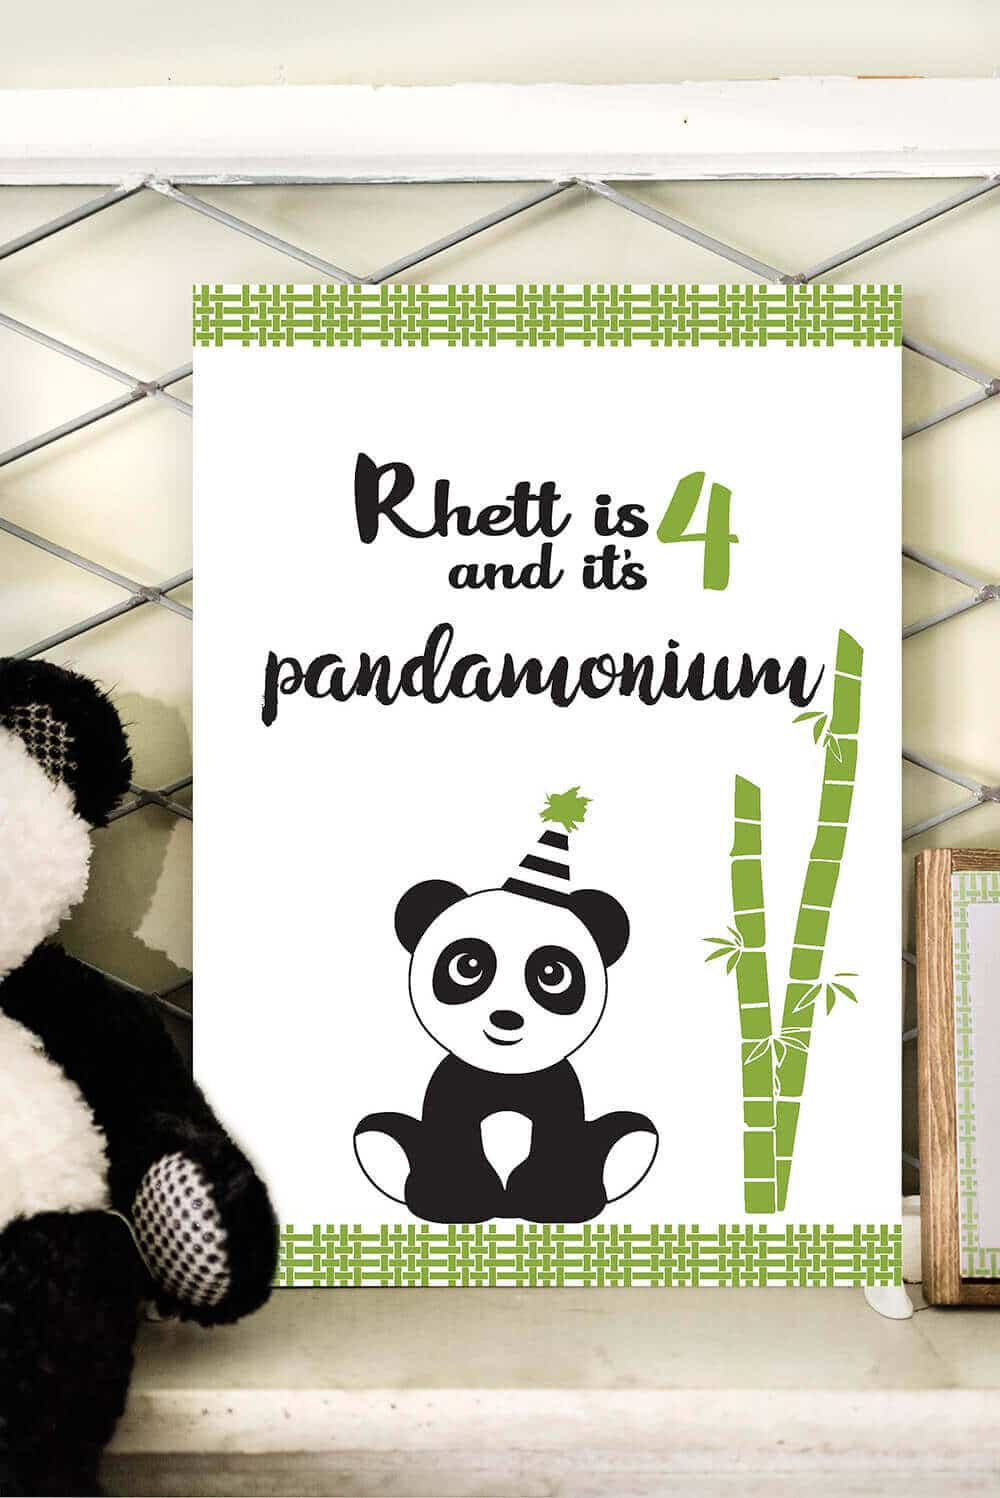 It's PANDAmonium backdrop poster to party like a panda